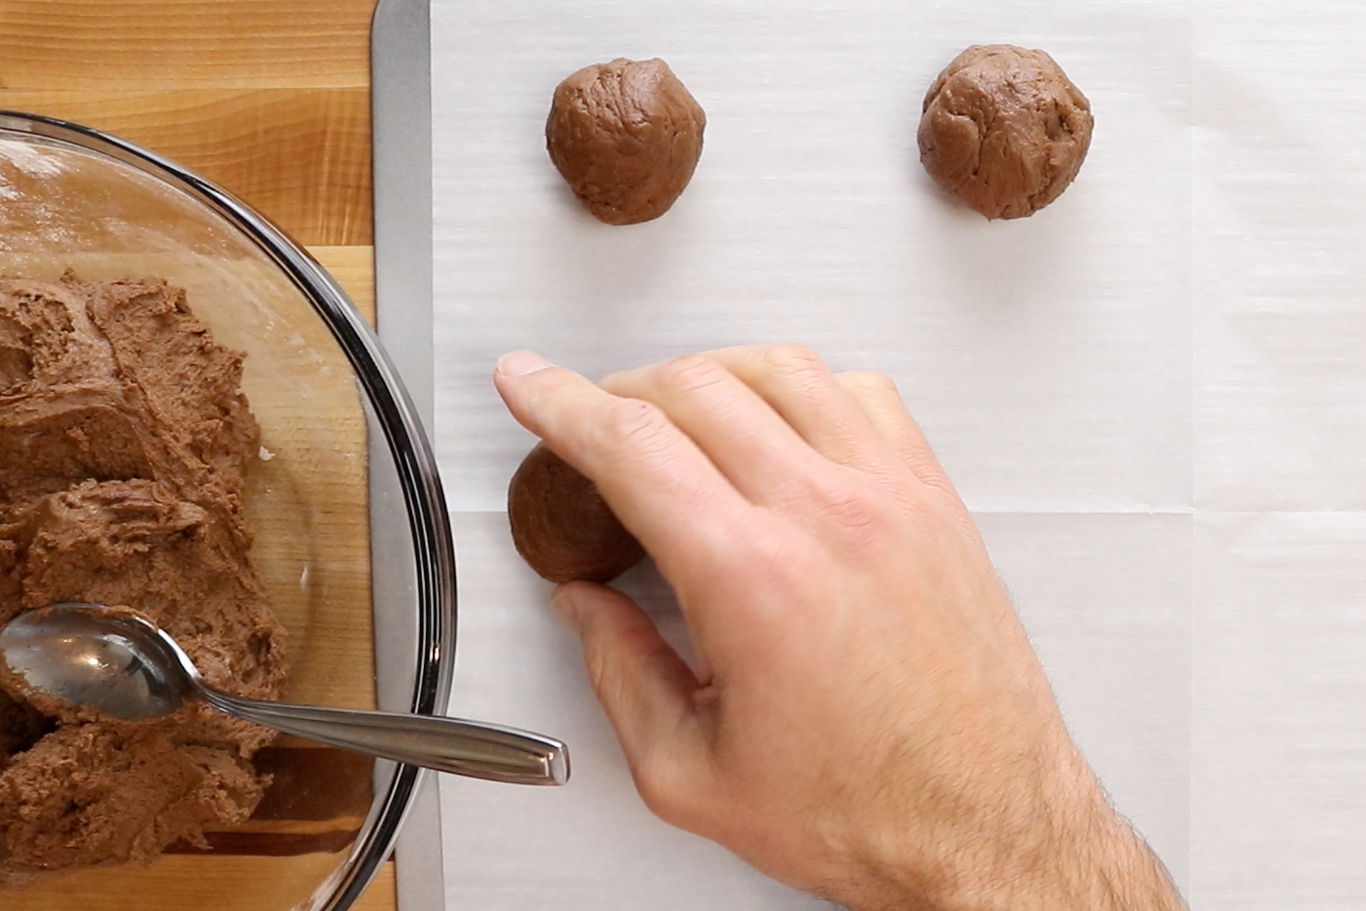 5. Drop teaspoon sized balls of dough on a parchment lined baking sheet. -